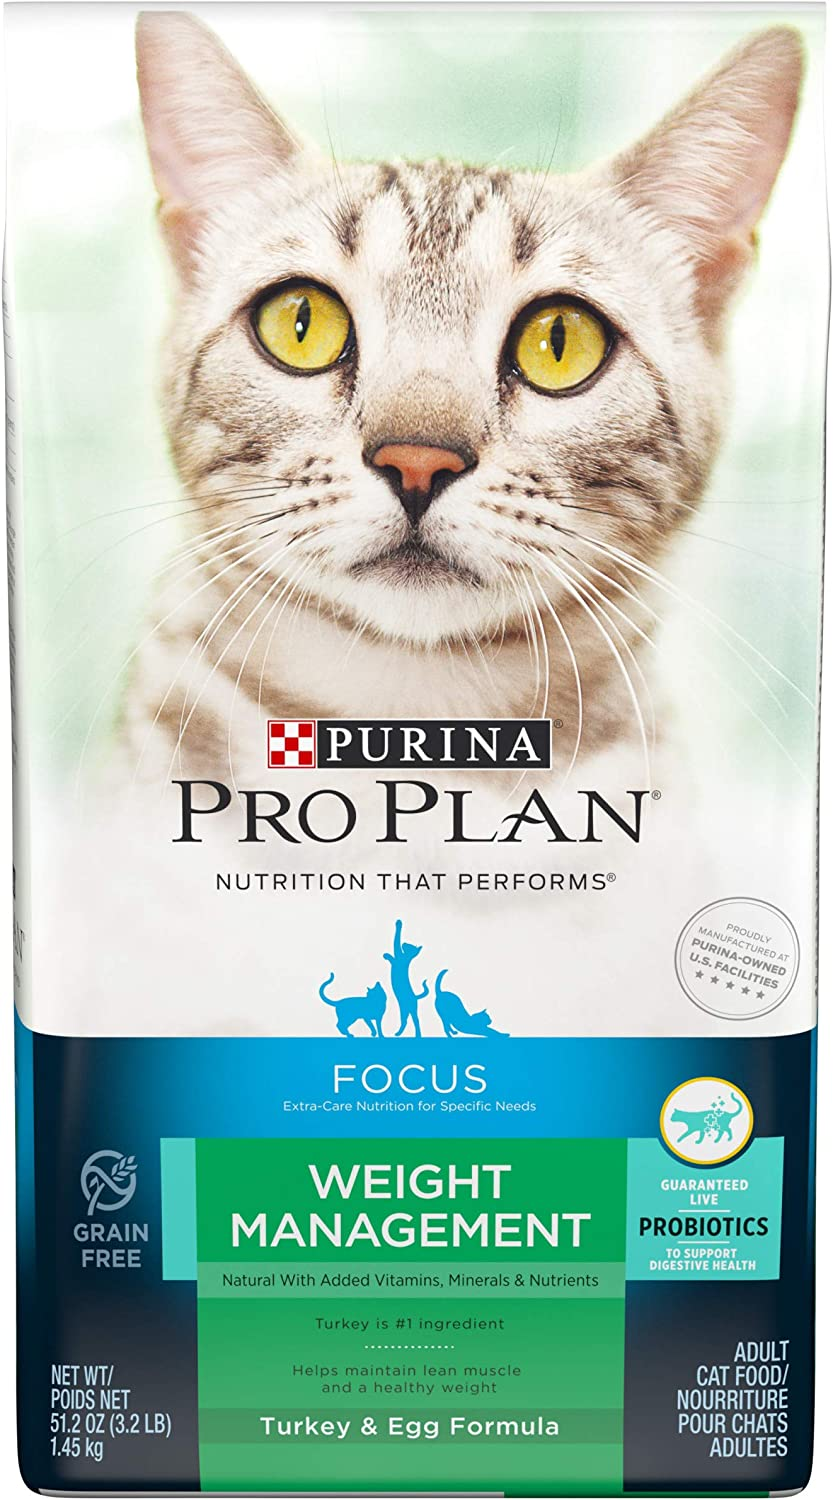 Purina Pro Plan Focus Weight Management Natural Turkey & Egg Formula with Added Vitamins, Minerals & Nutrients Adult Dry Cat Food  3.2 lb. Bag